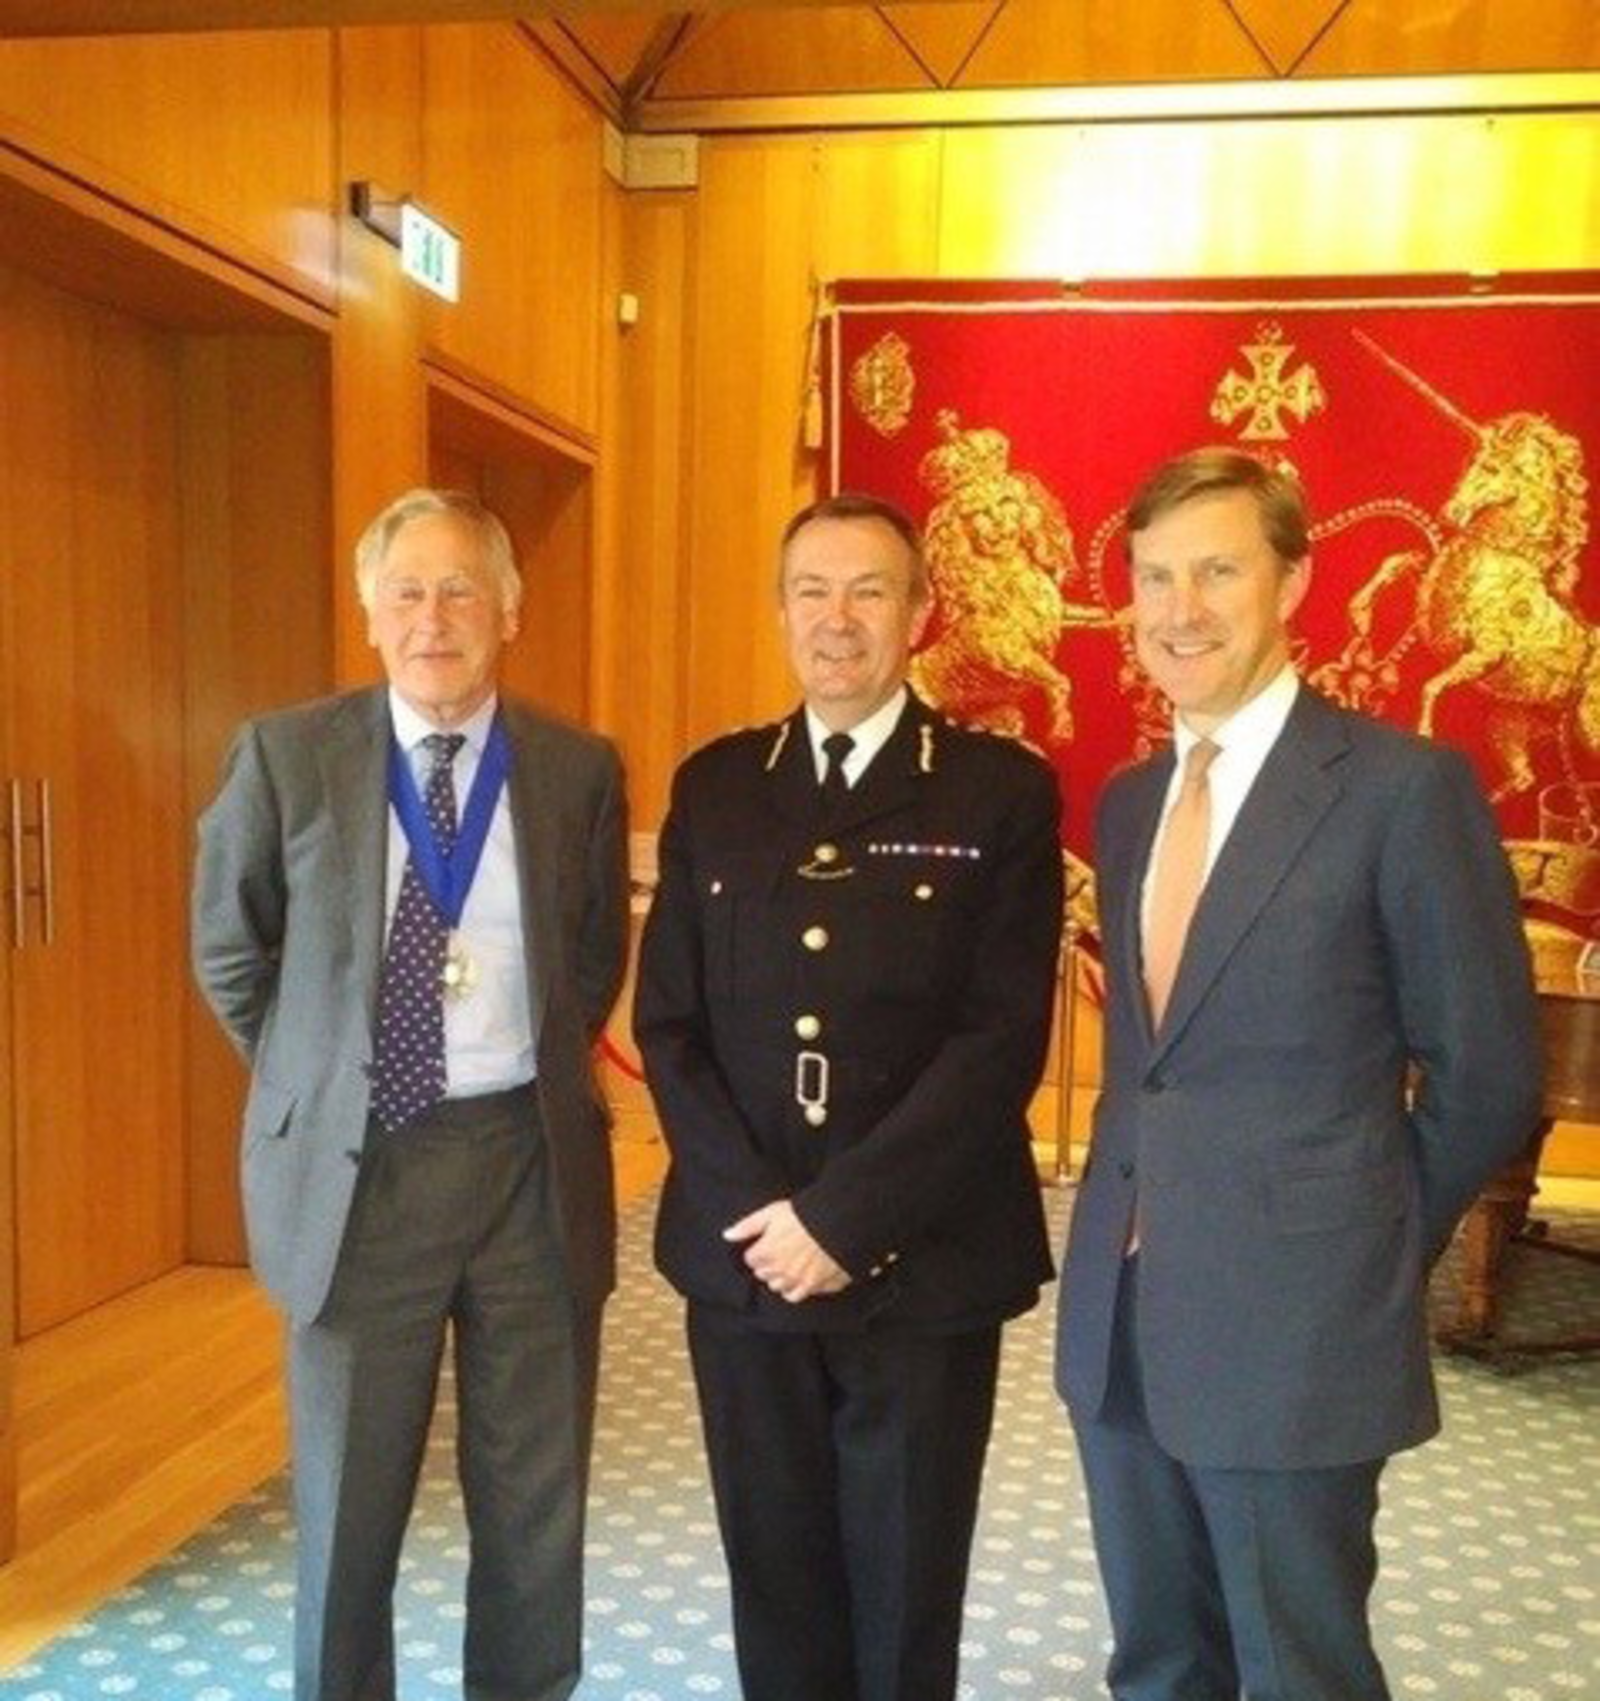 The City of London Police Commissioner at Haberdashers' Hall